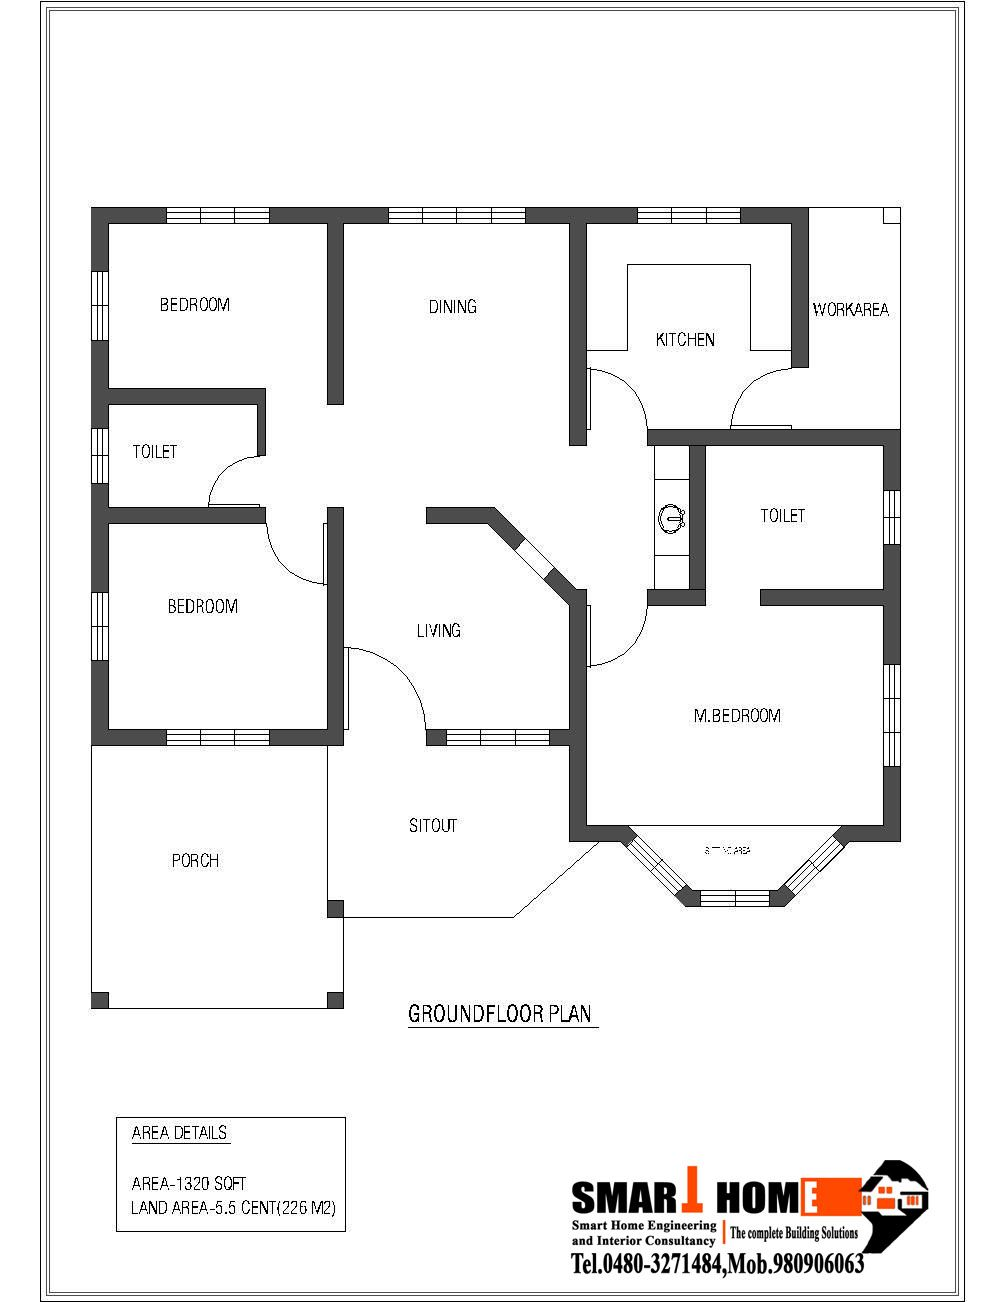 1320 sqft kerala style 3 bedroom house plan from smart for Three bedroom house plans kerala style